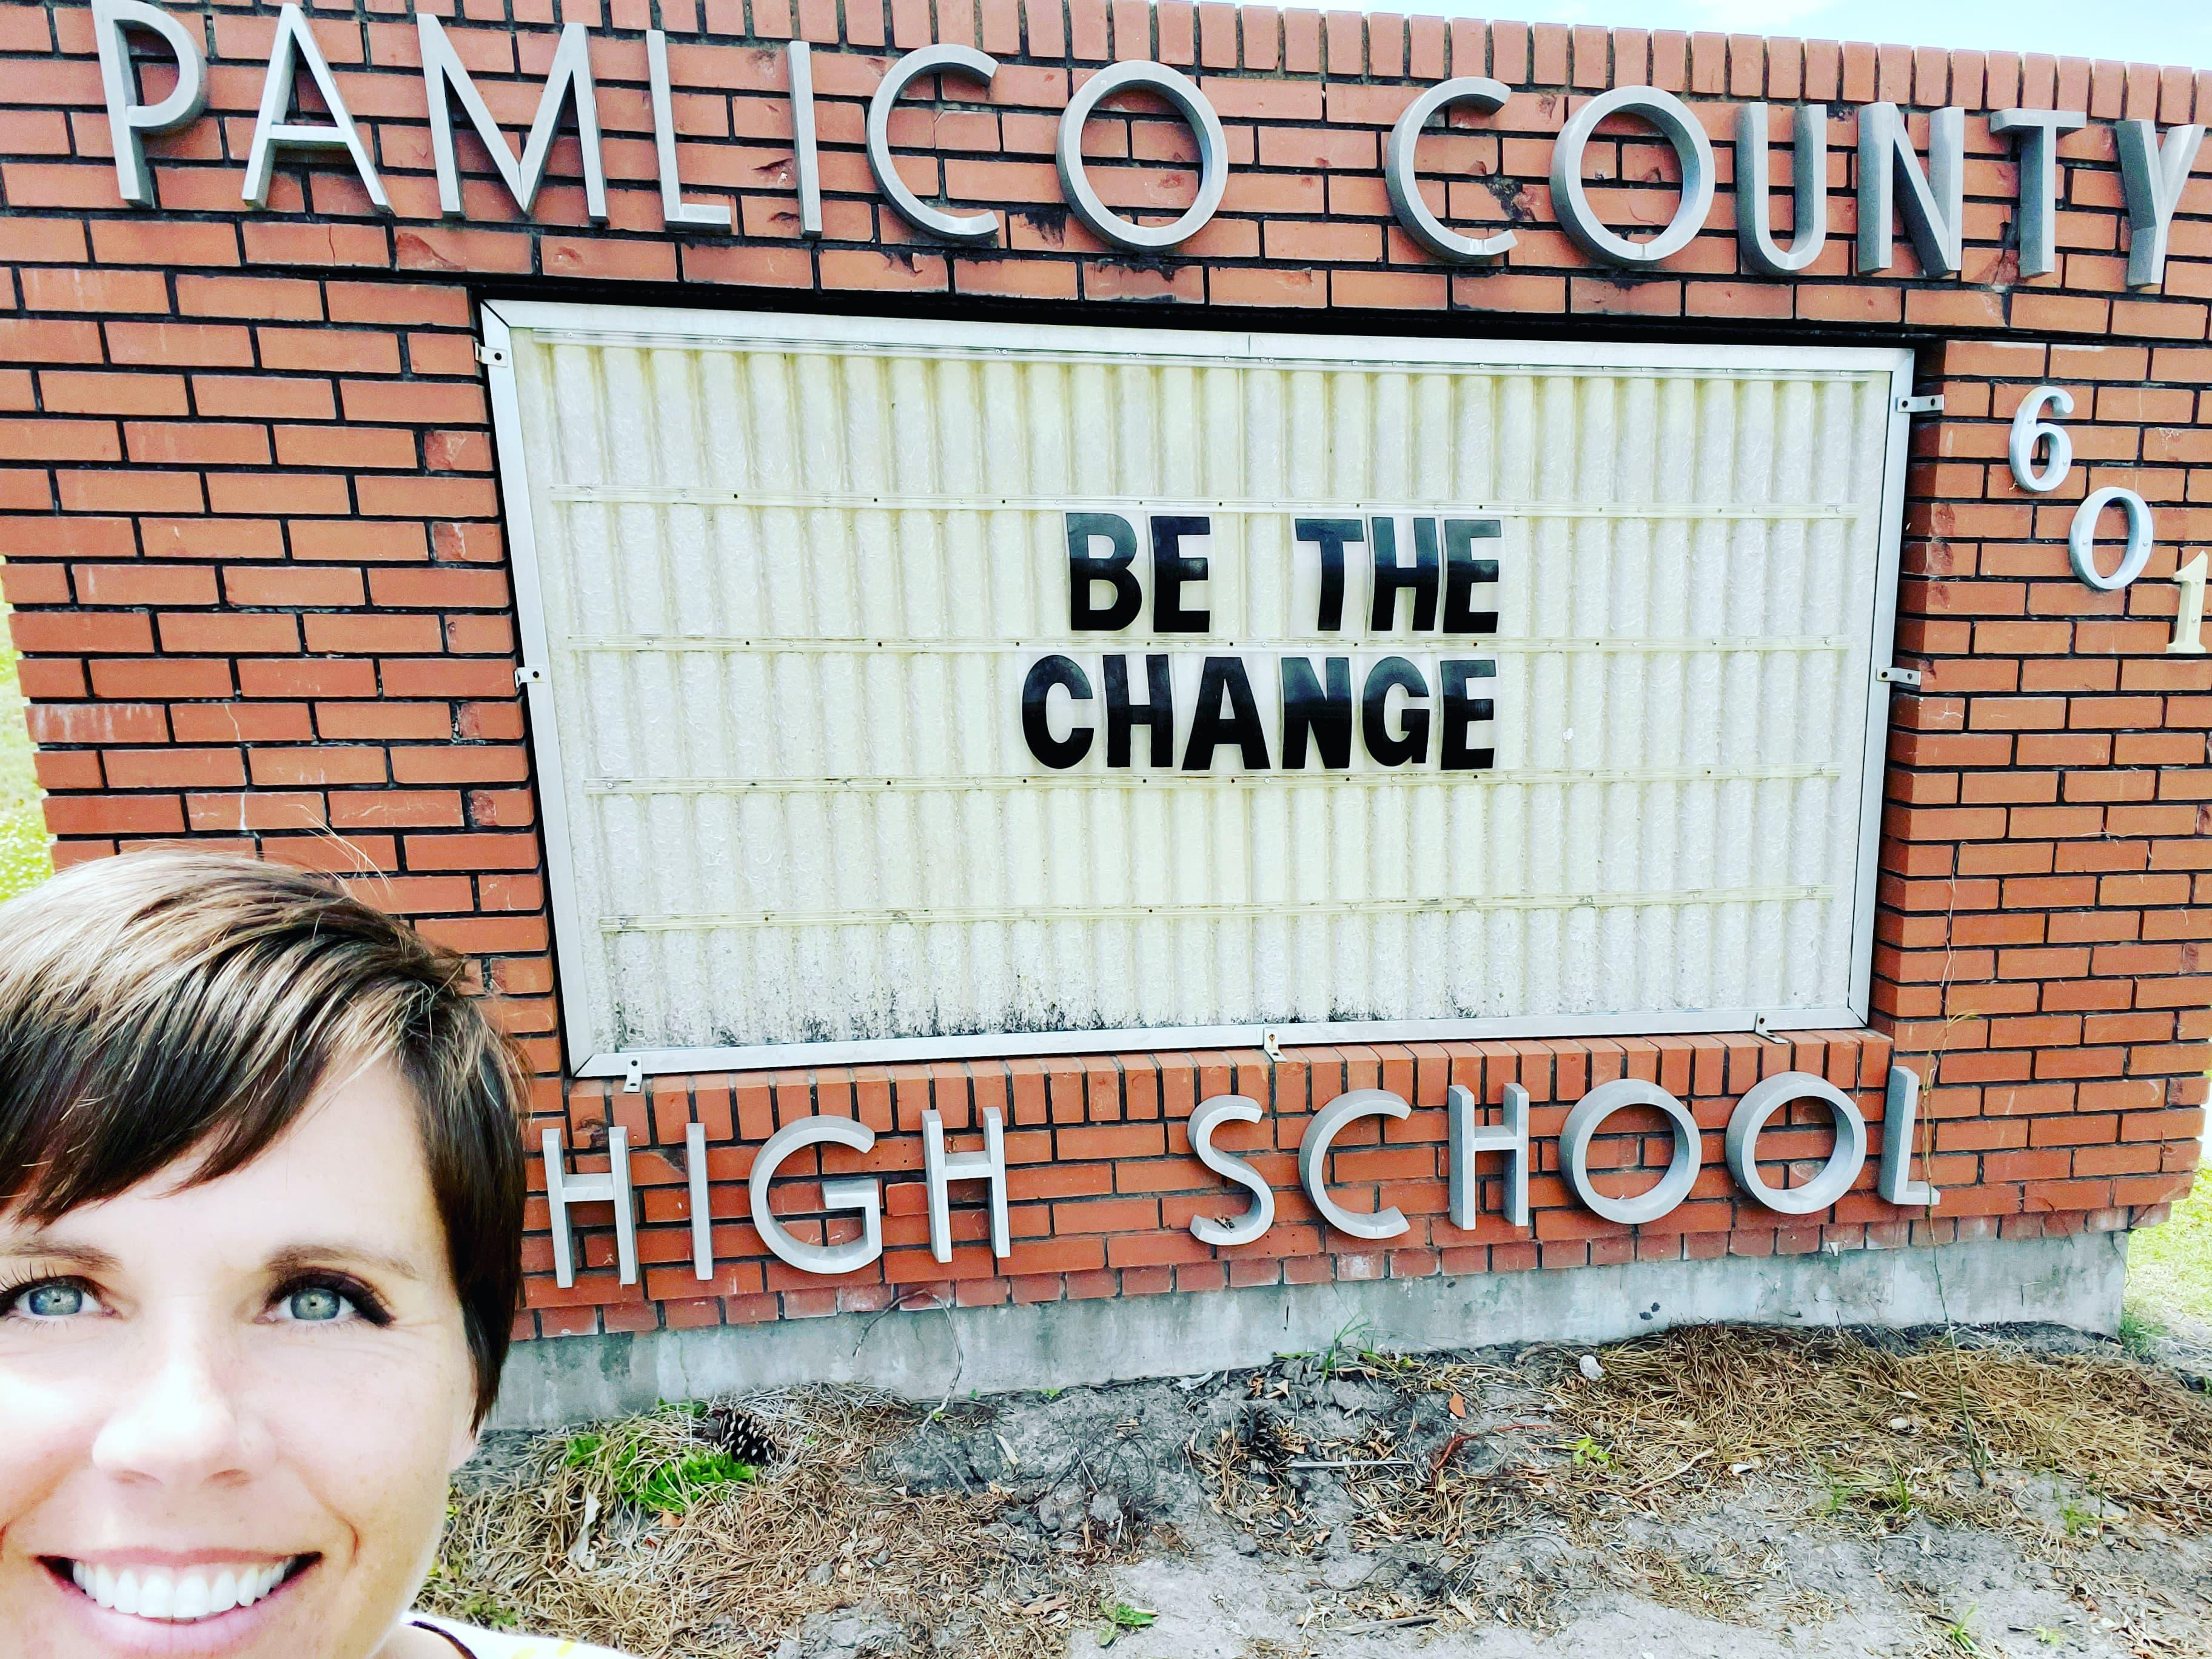 Principal Holton in front of the PCHS sign, which reads